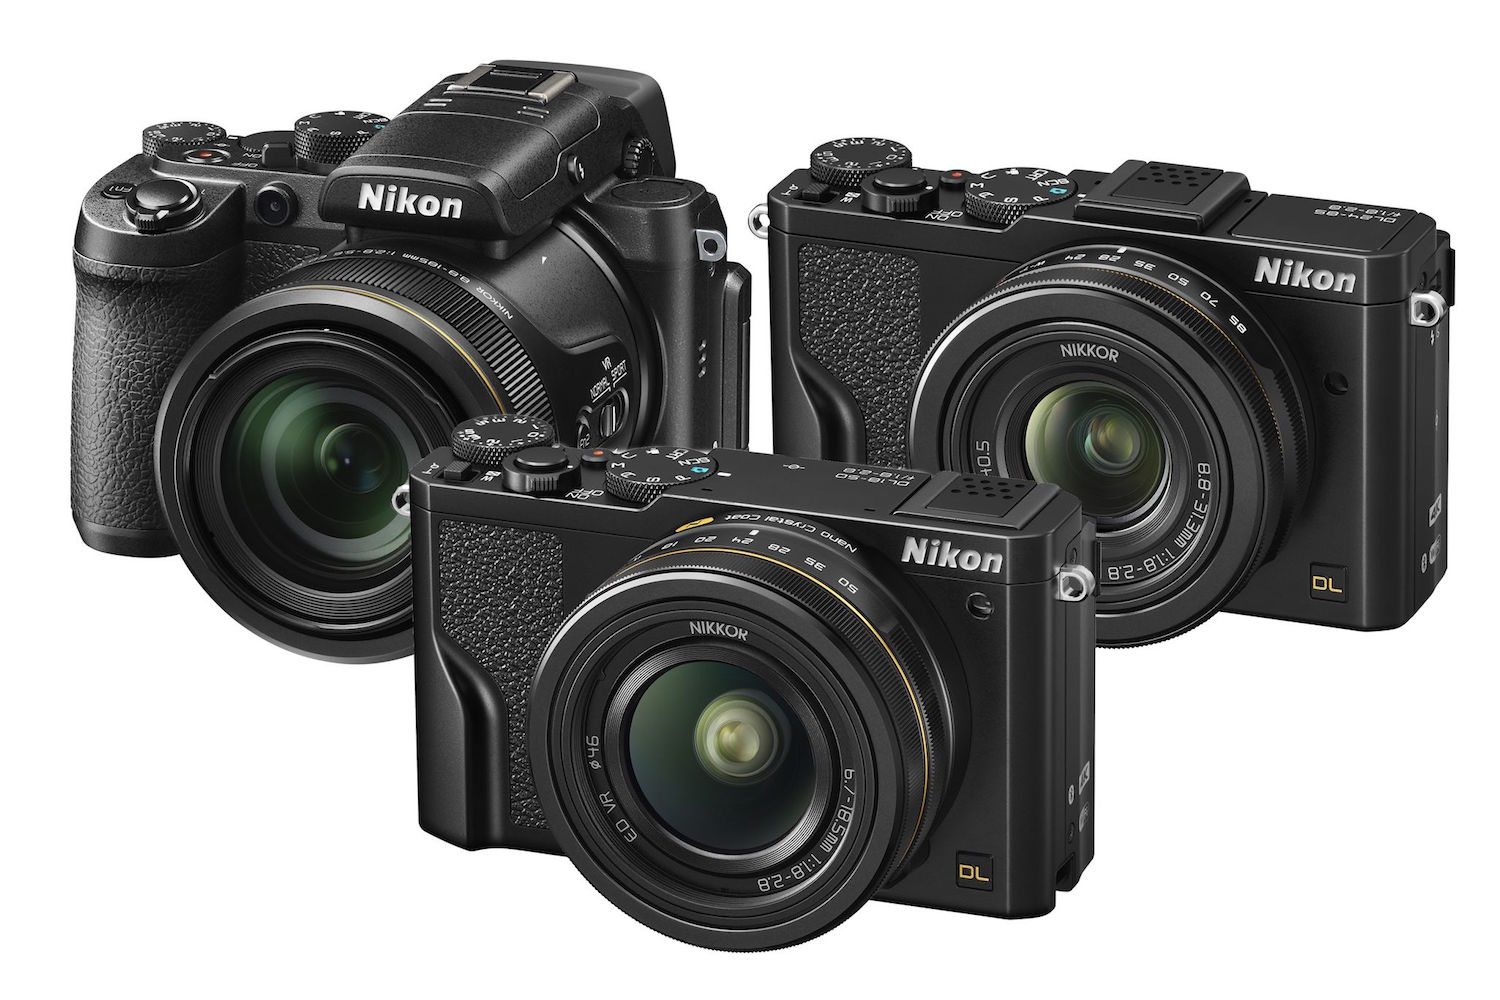 Nikon Cancels DL Series Cameras